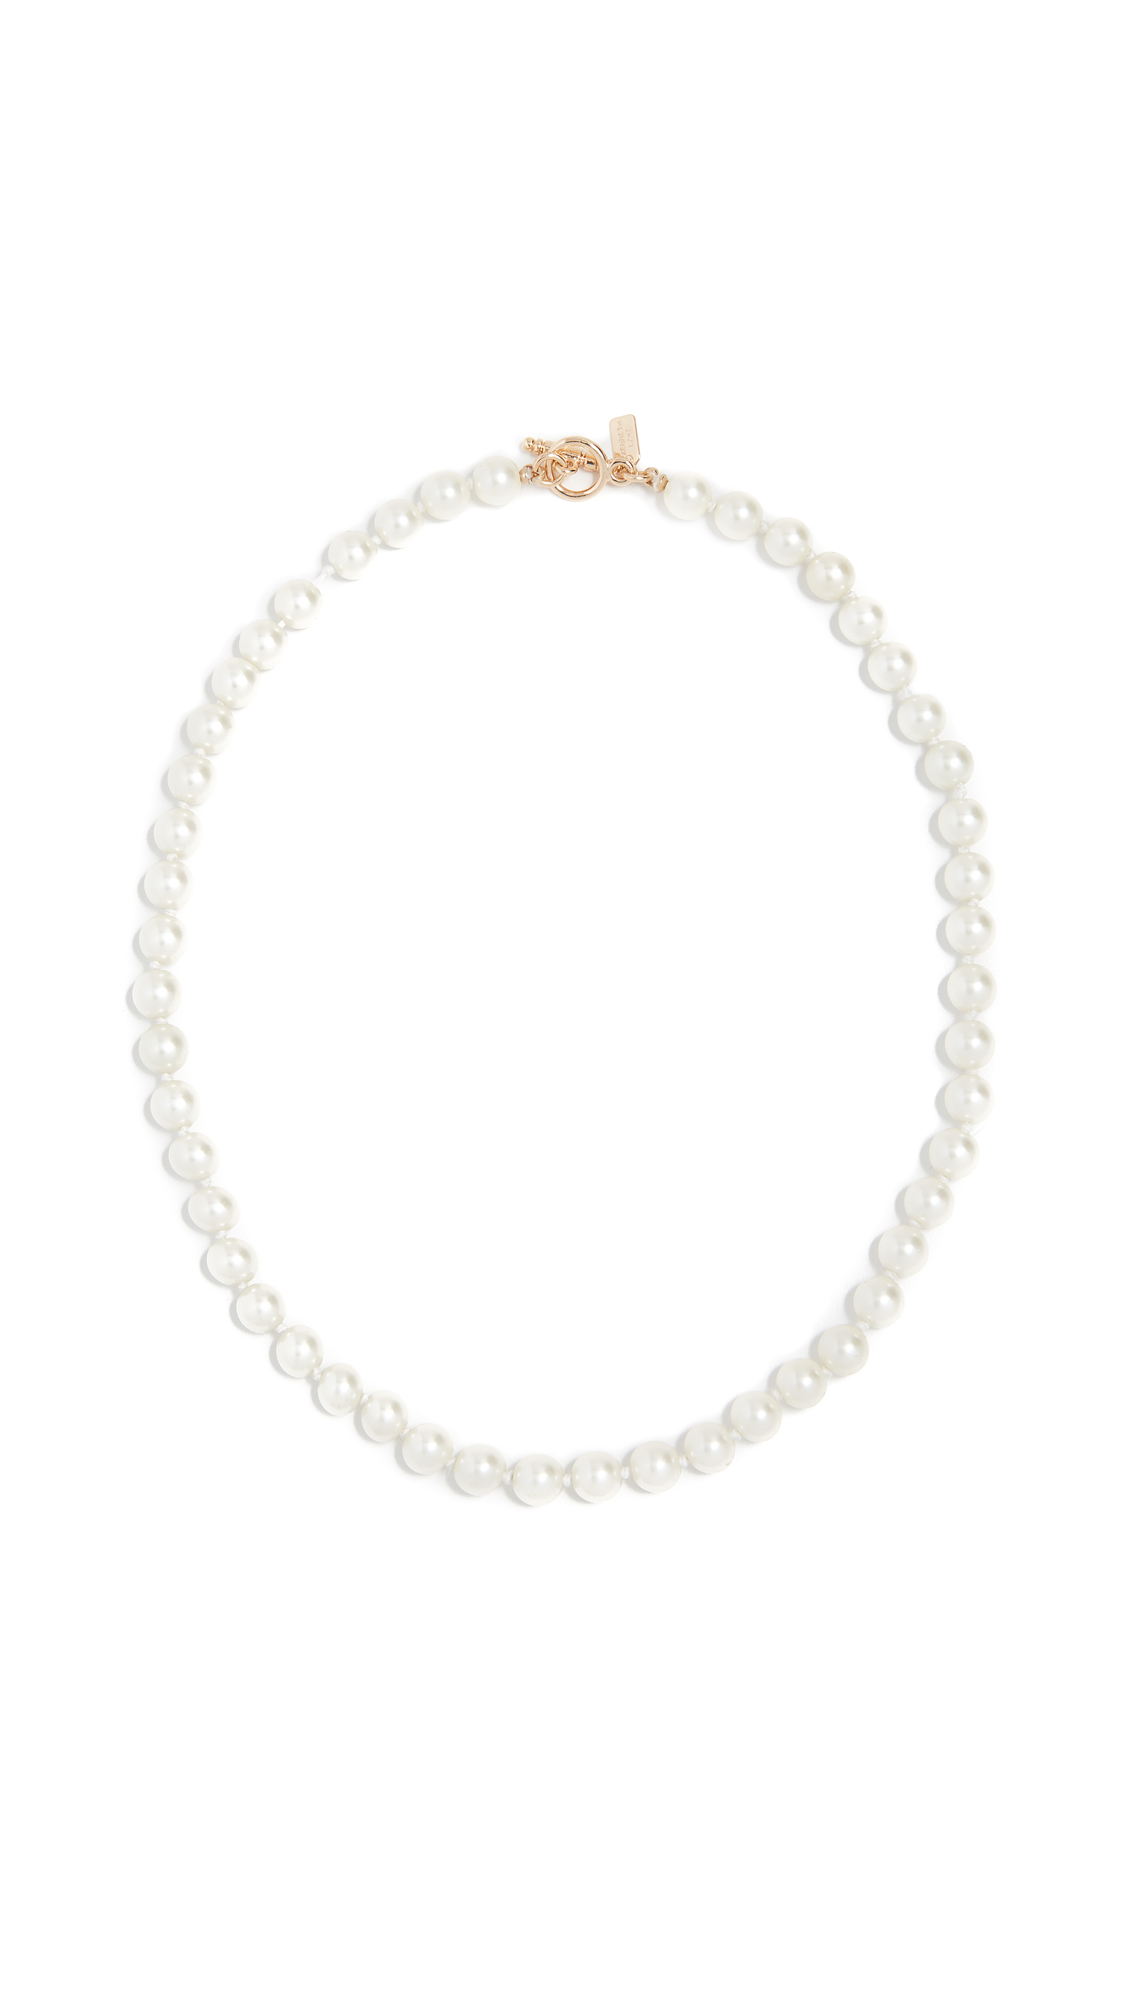 Kenneth Jay Lane Light Cultura Imitation Pearl Necklace In Light Cultura  Pearls